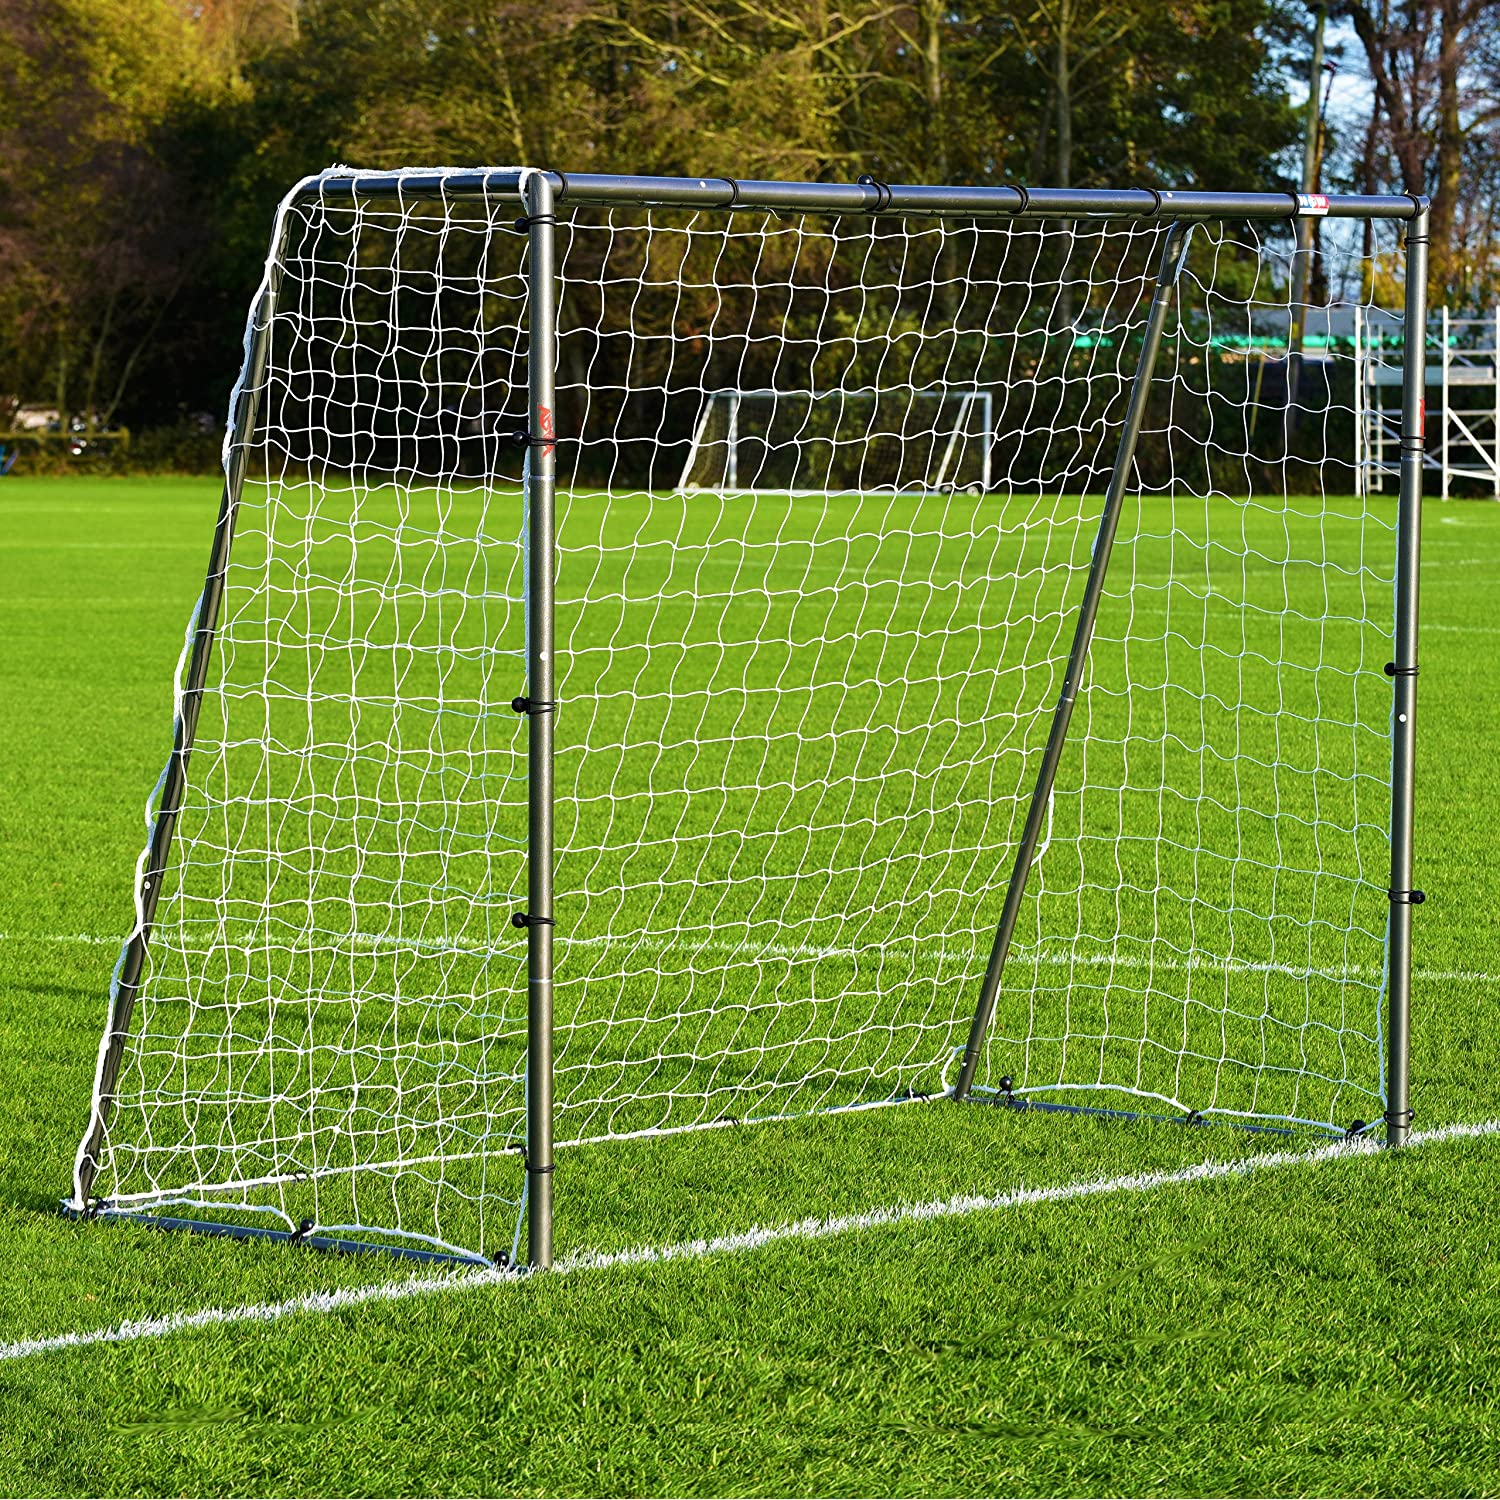 8 x 6 FORZA steel42 Soccer Goal – [ The StrongestスチールGoal Post & Netパッケージwith Soccer Goal Targetトレーニングシート] B018UC6986with Target Sheet + Ball